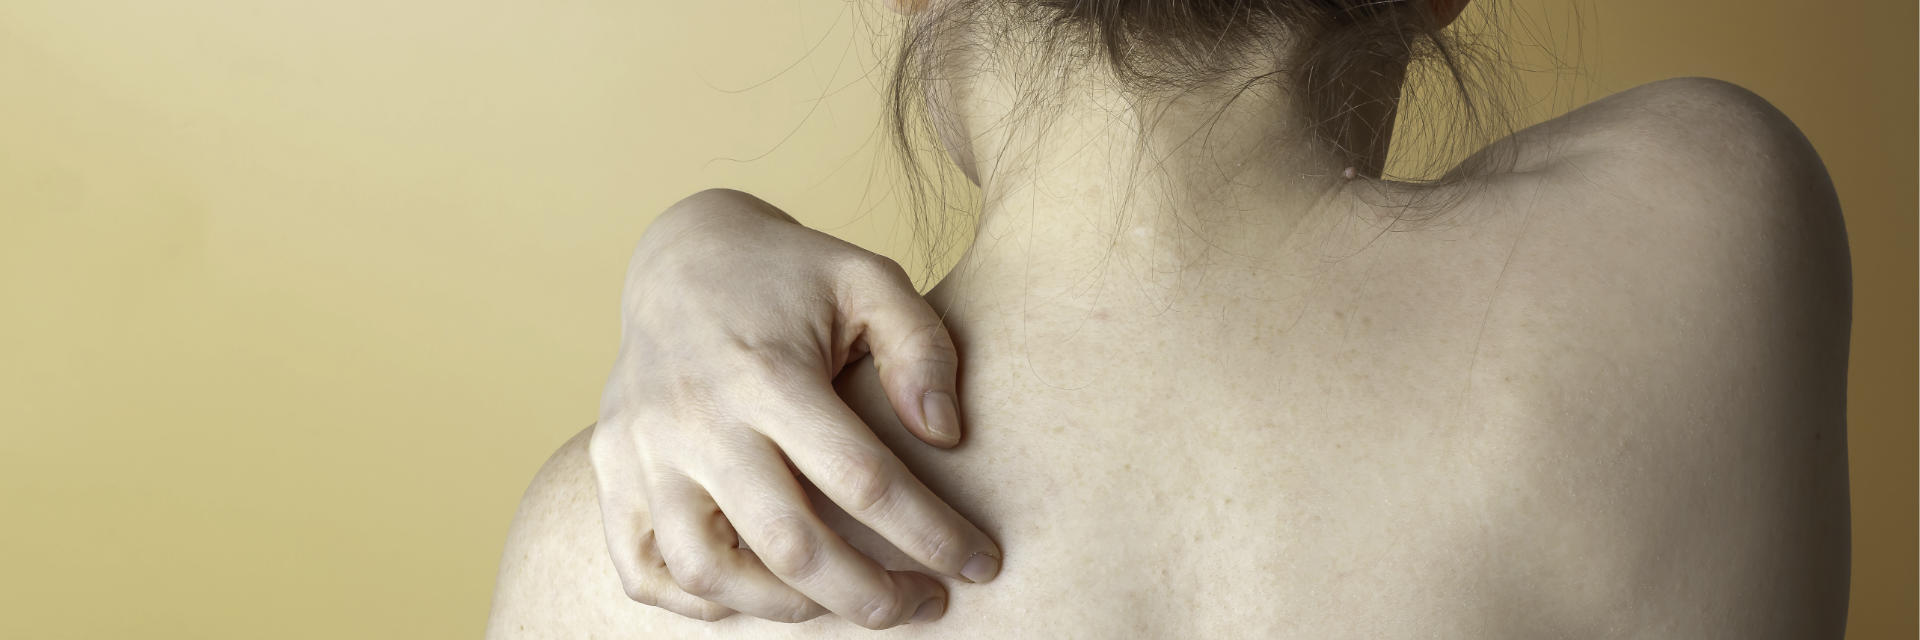 A woman with shoulder pain due to osteoarthritis.